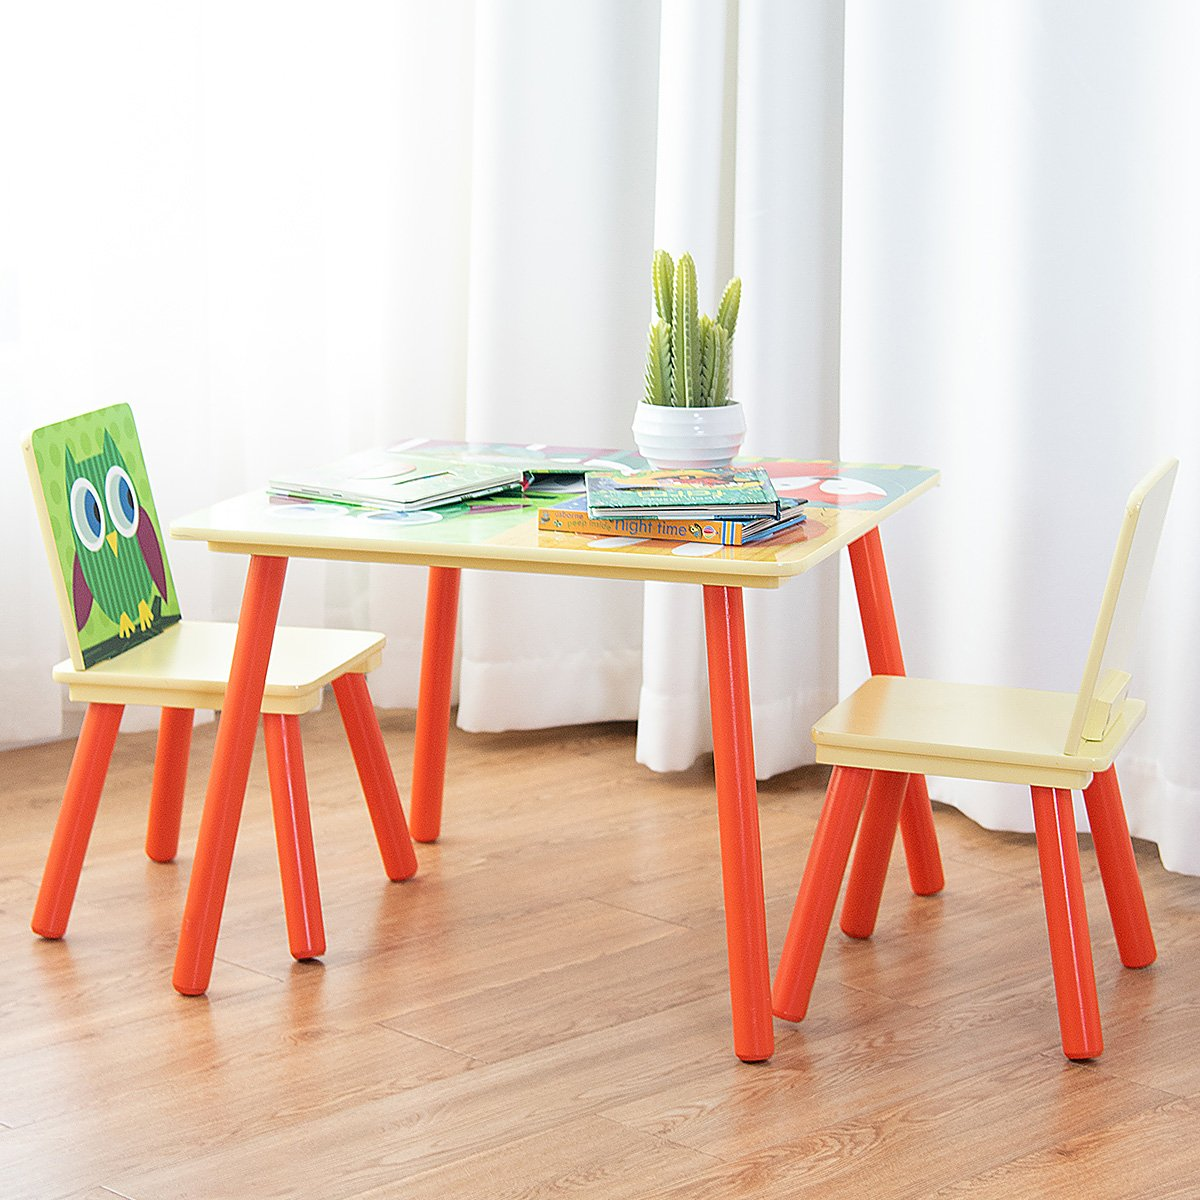 Costzon Kids Table and 2 Chair Set, Wooden Table Furniture for Children Toddler, Creation Inspiring Activity Table Desk Sets for Playing Studying in Bedroom, Playroom, Kindergarten by Costzon